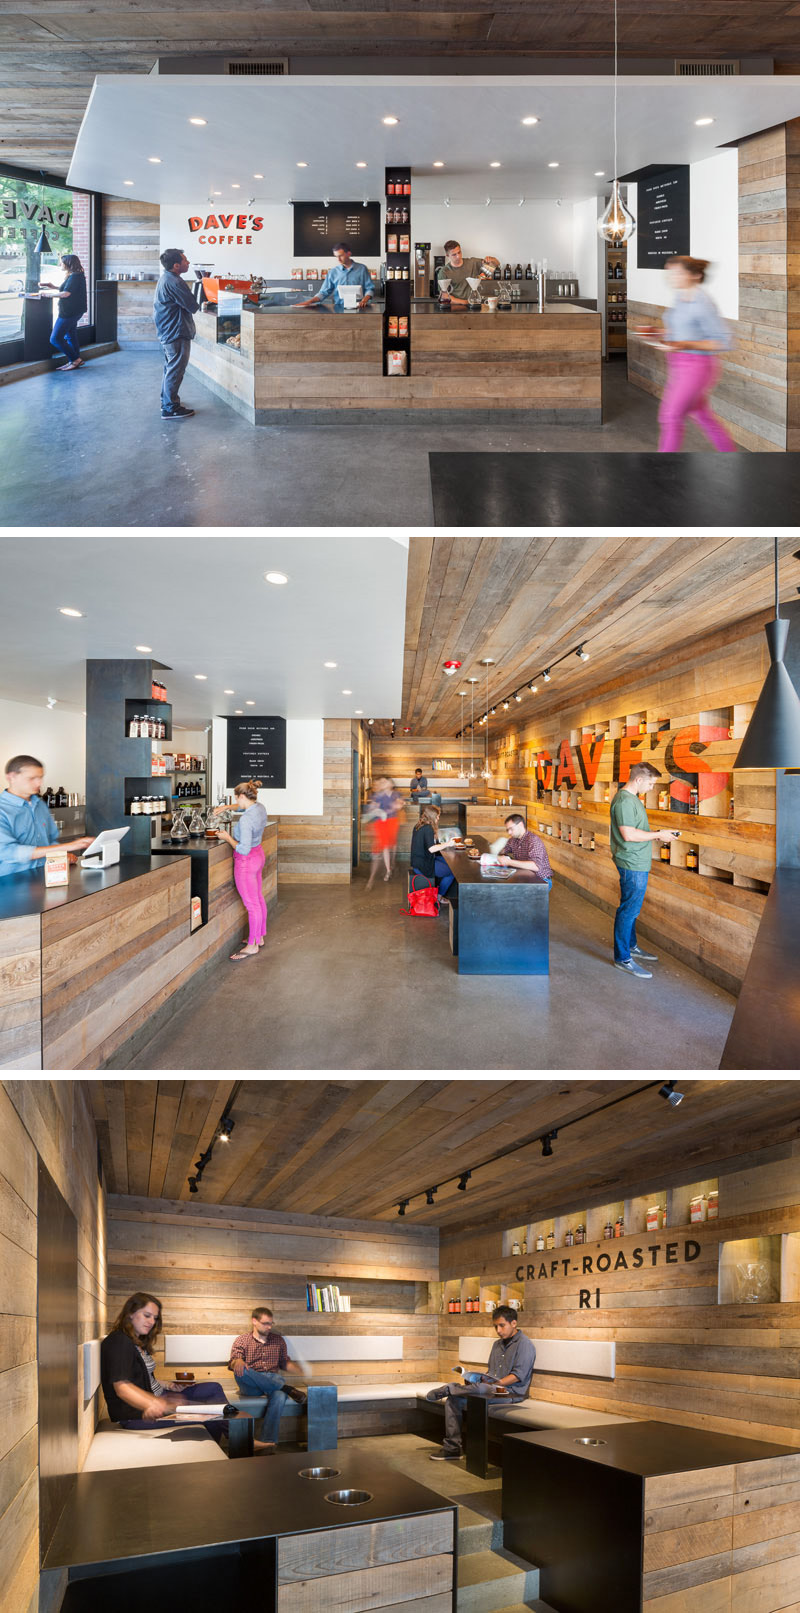 10 north american coffee shops that are distinctive in their design rh contemporist com coffee shops bar harbor maine potters bar coffee shops